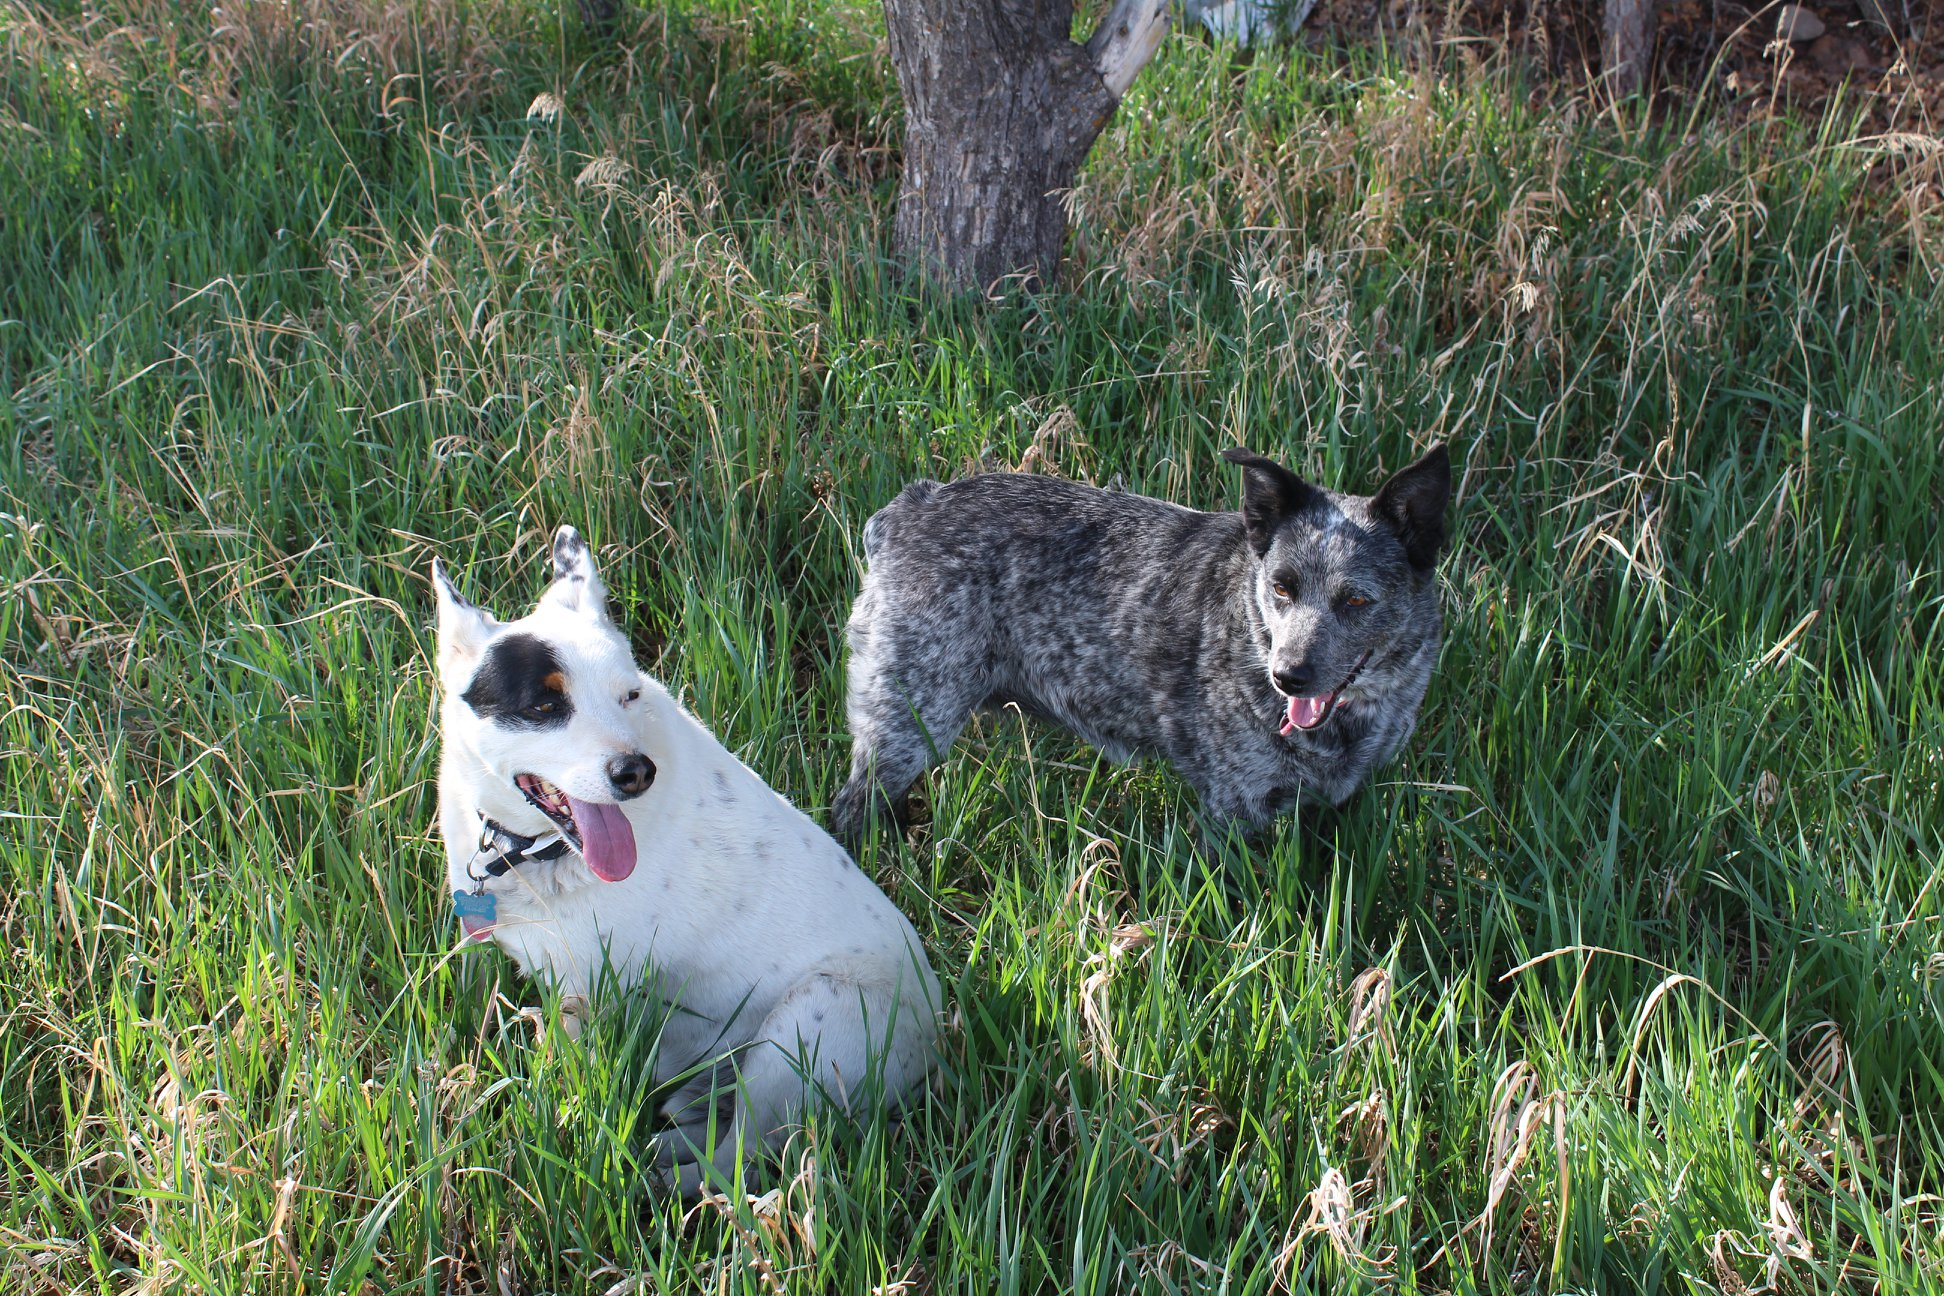 Millie and Trigger